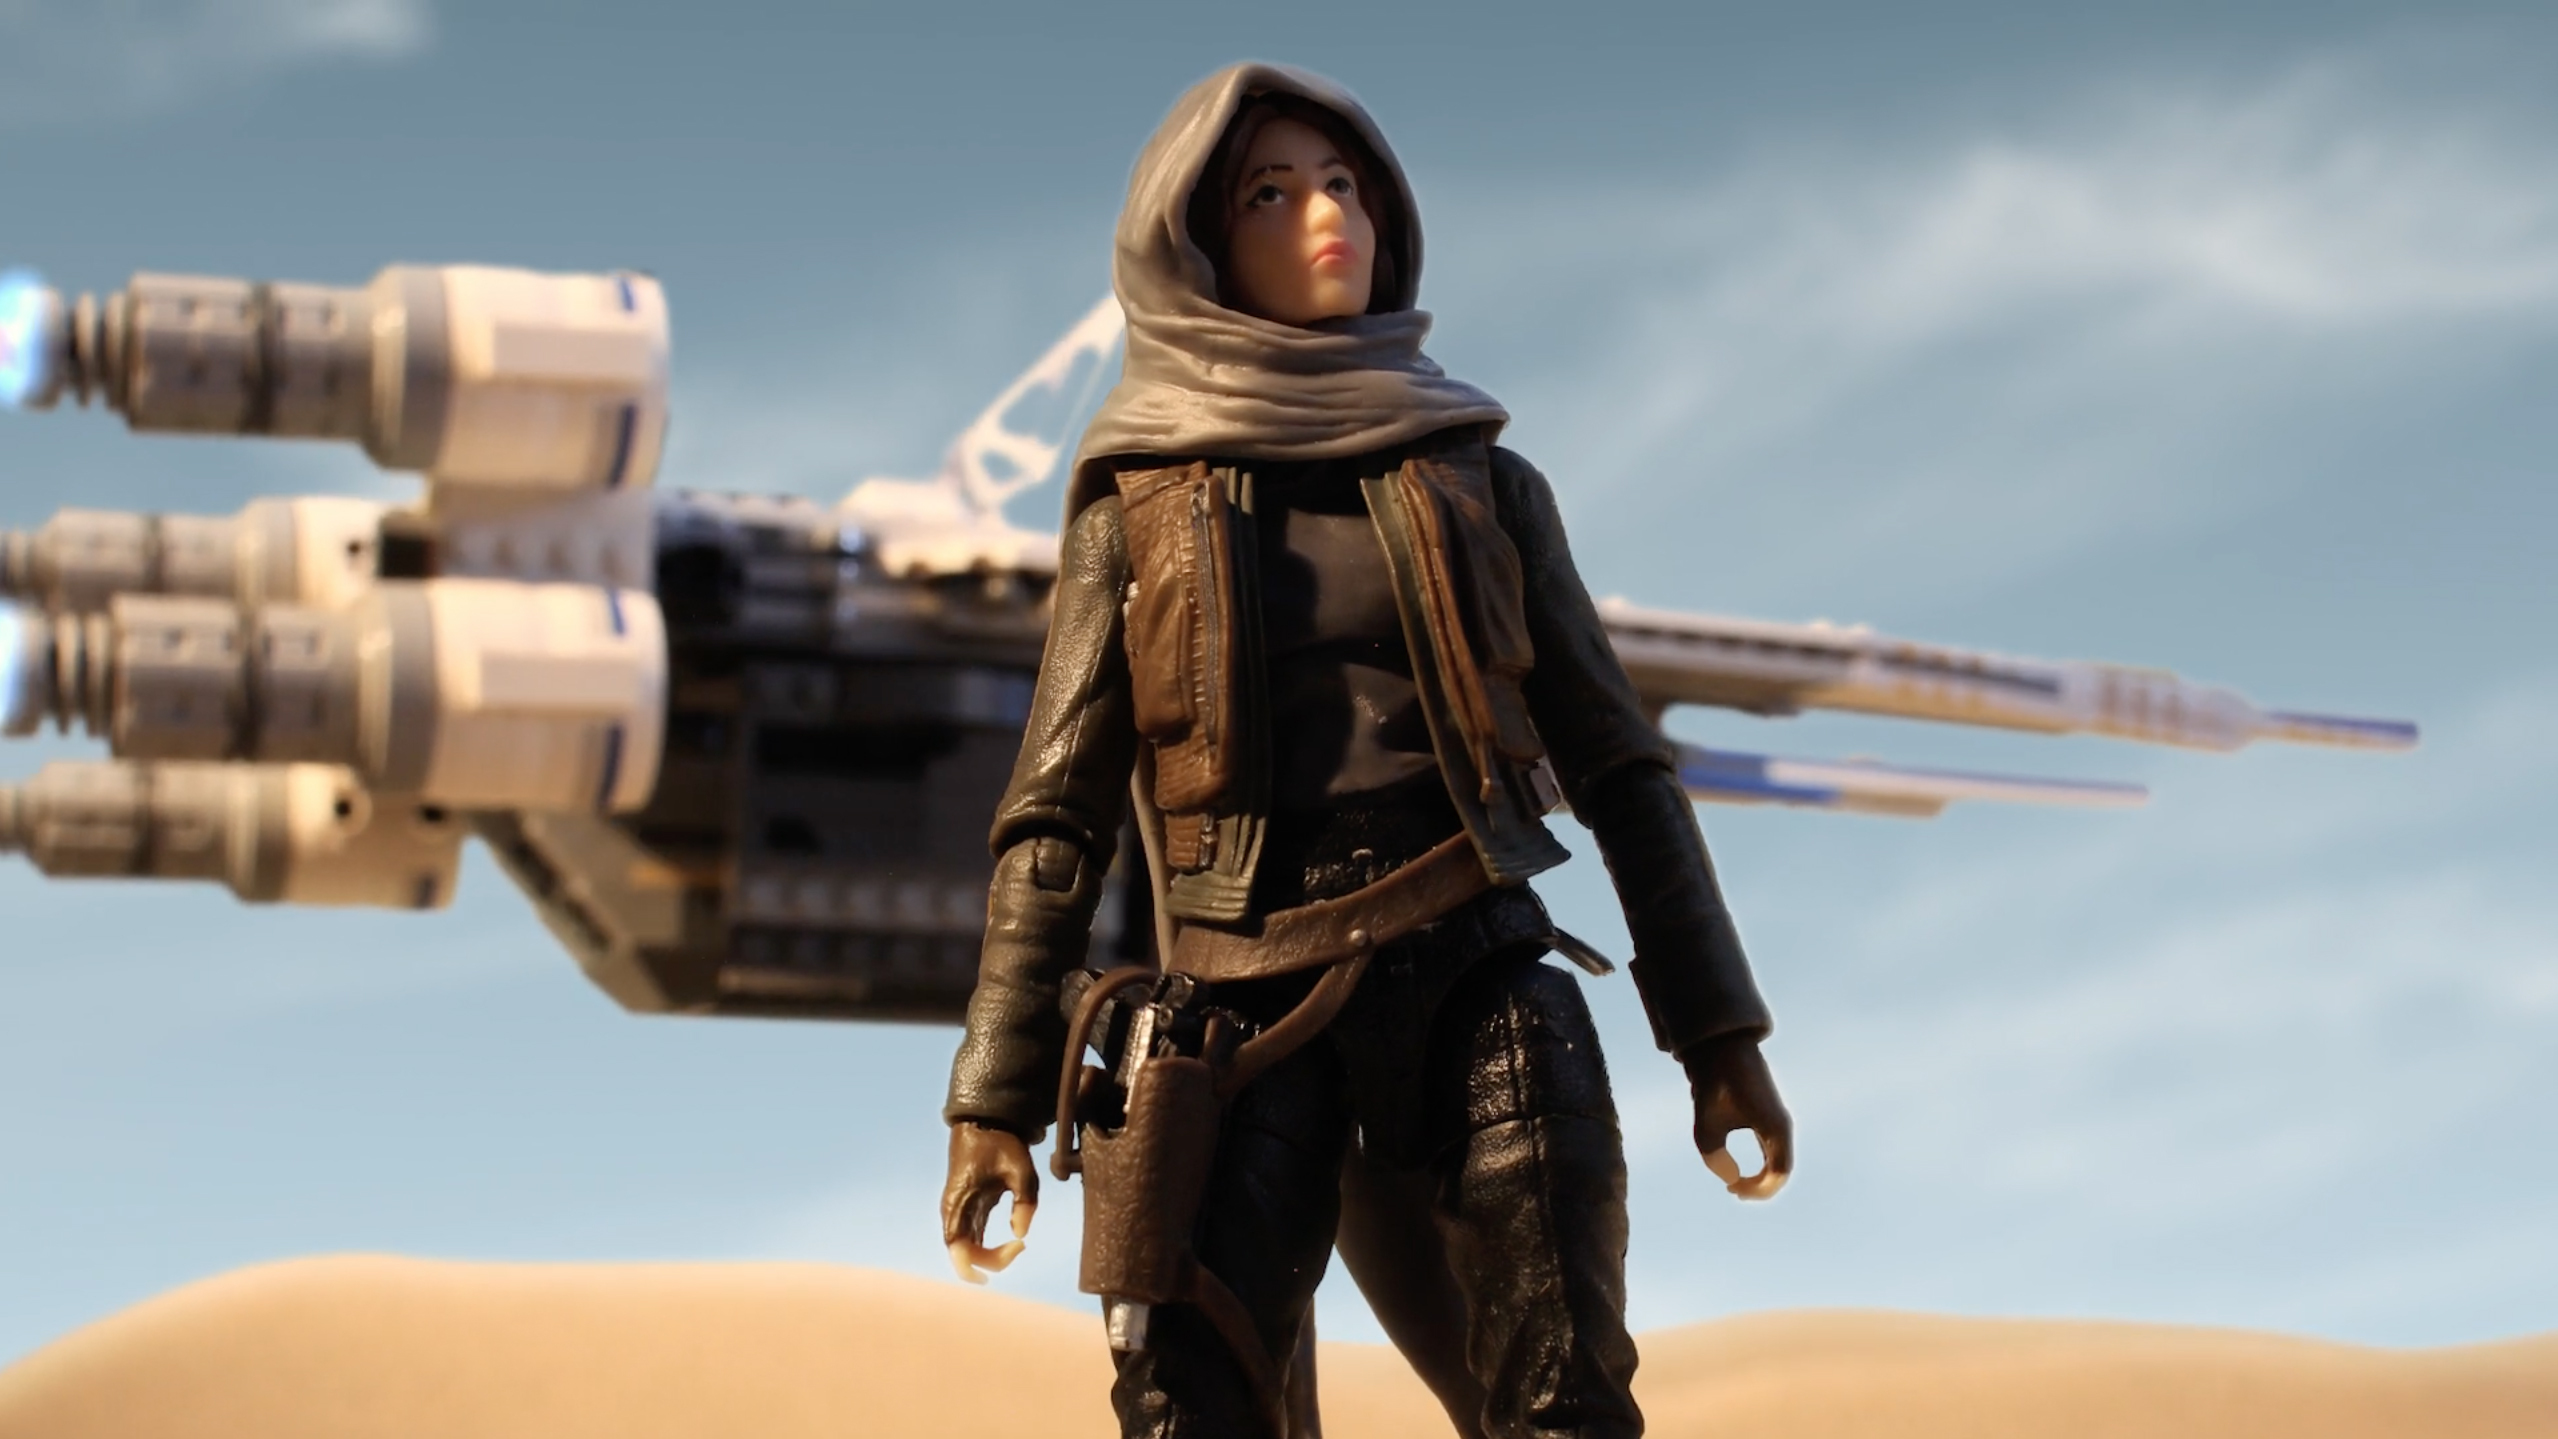 Star Wars Superfans #GoRogue to Reveal New Toy Line | Business Wire